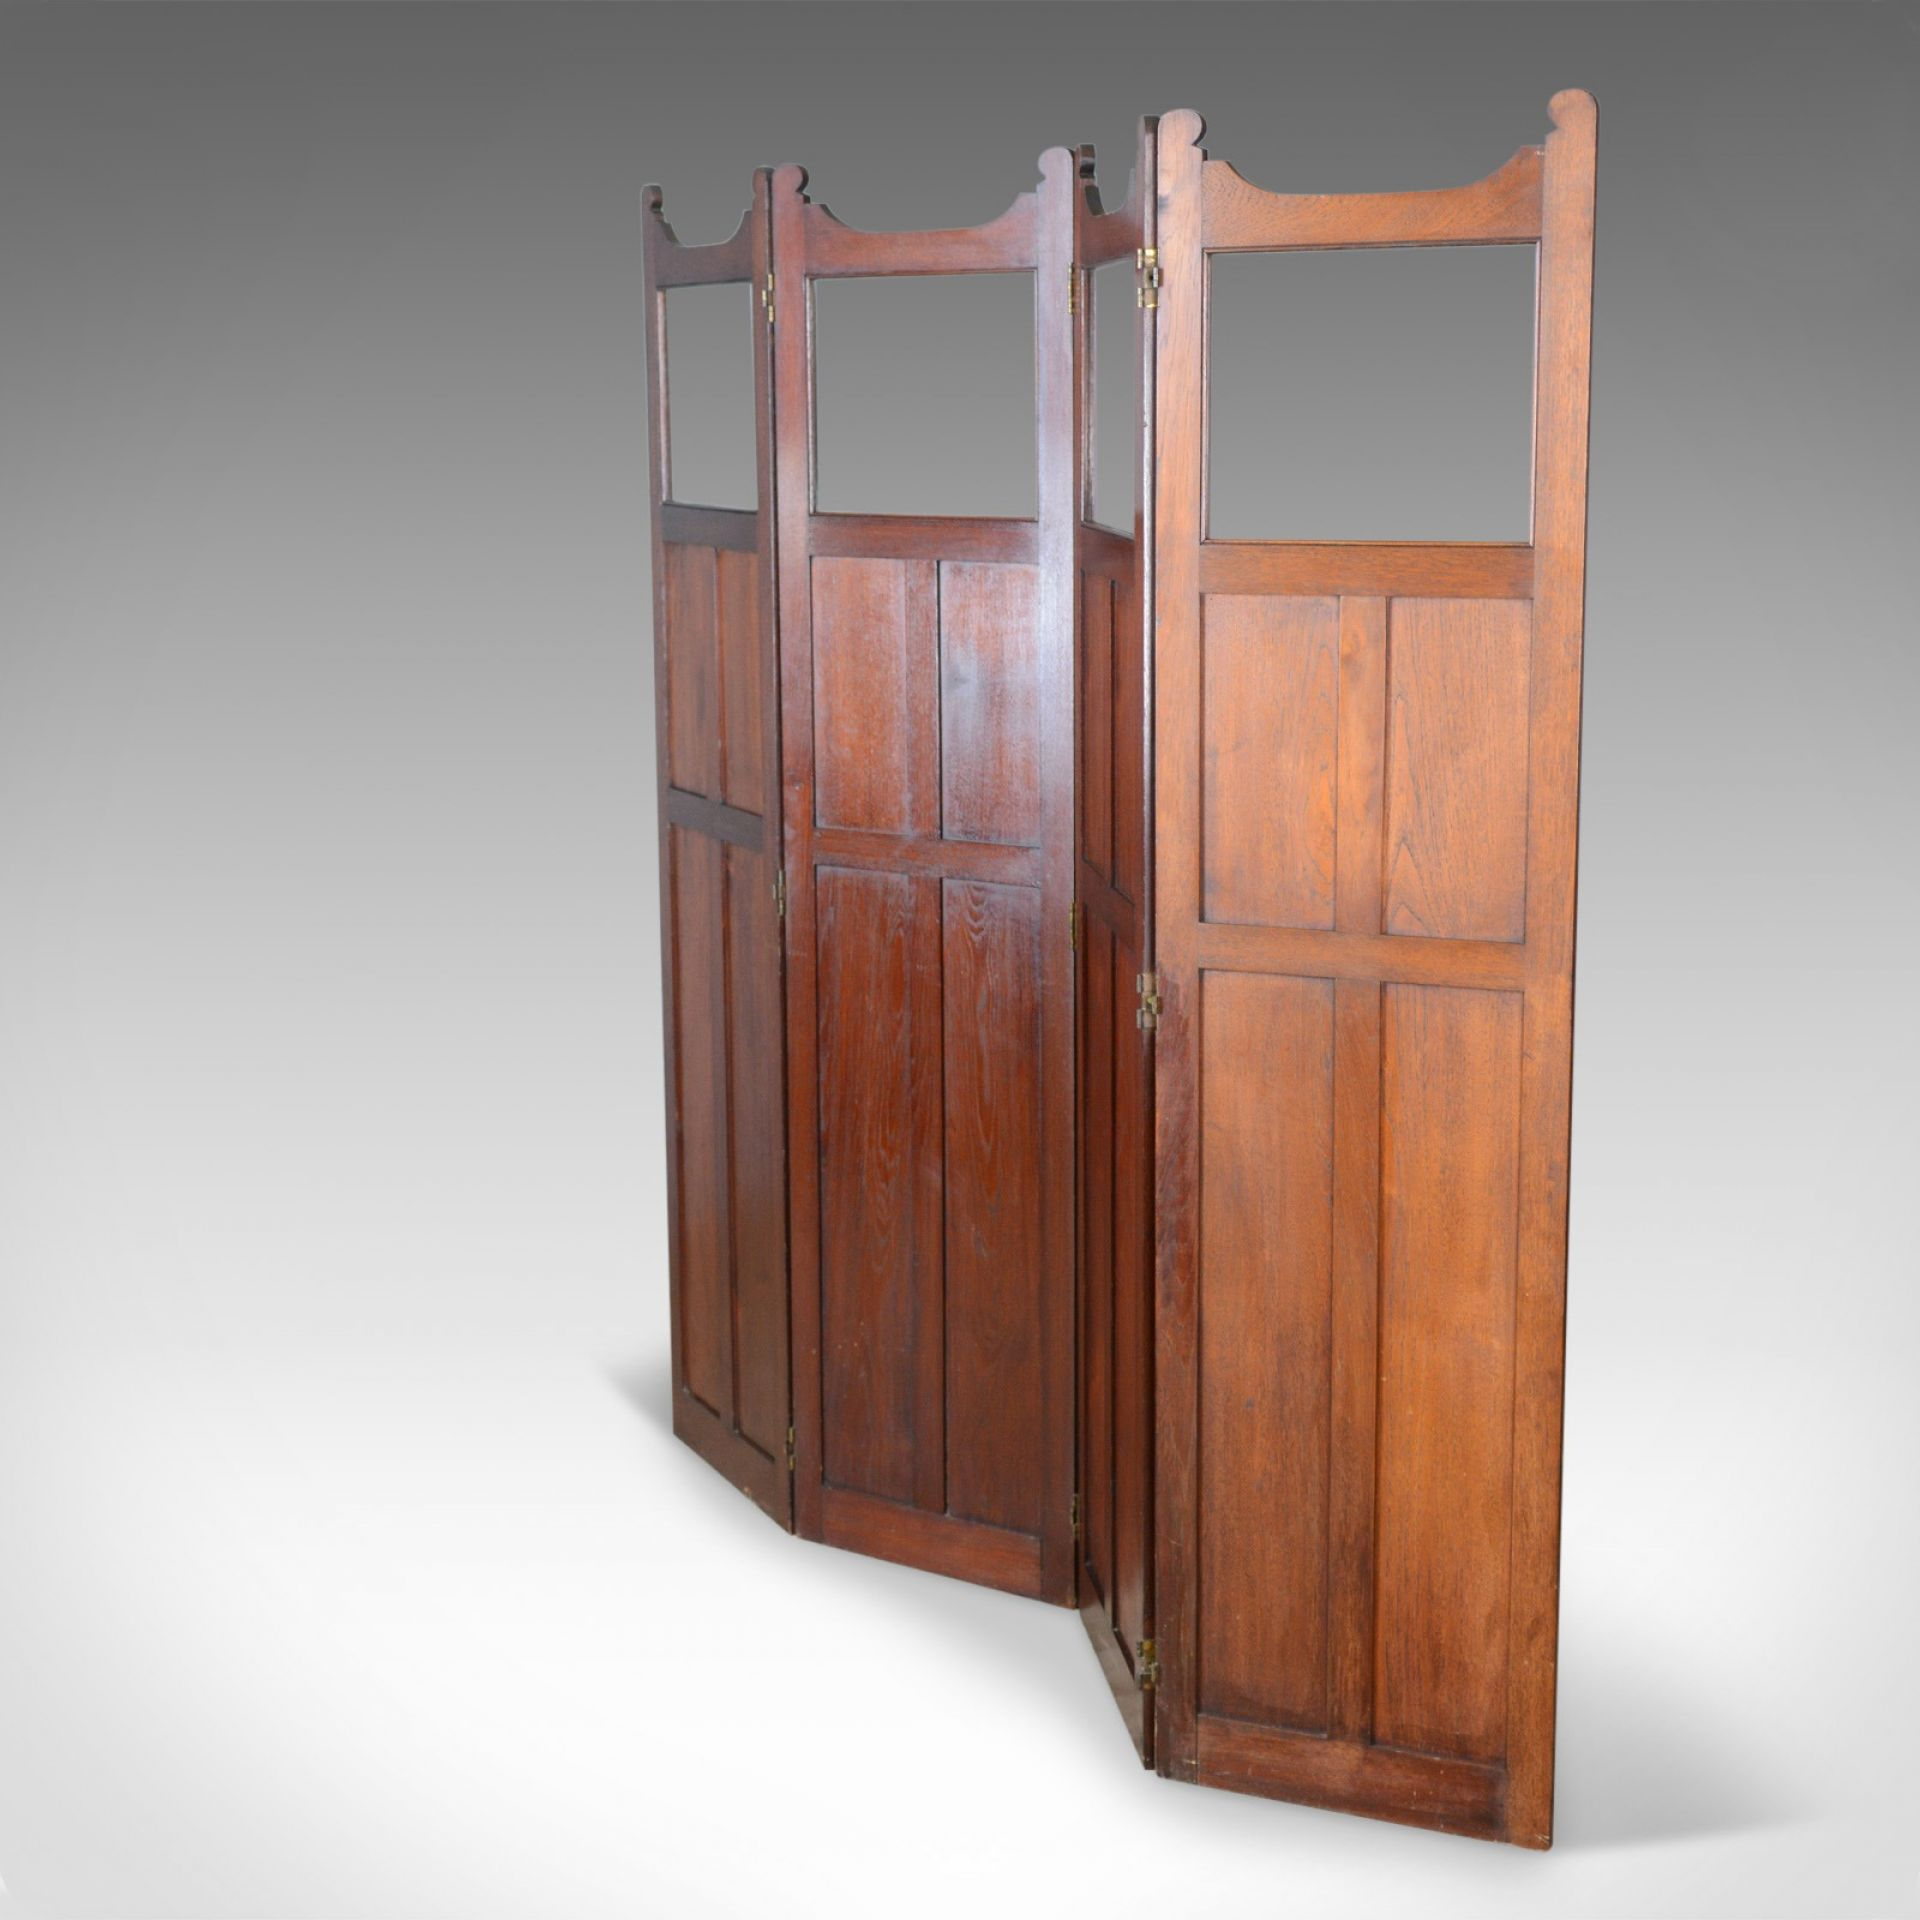 Antique Folding Screen, Edwardian, Four Panel, Walnut Room Divider, Circa 1910